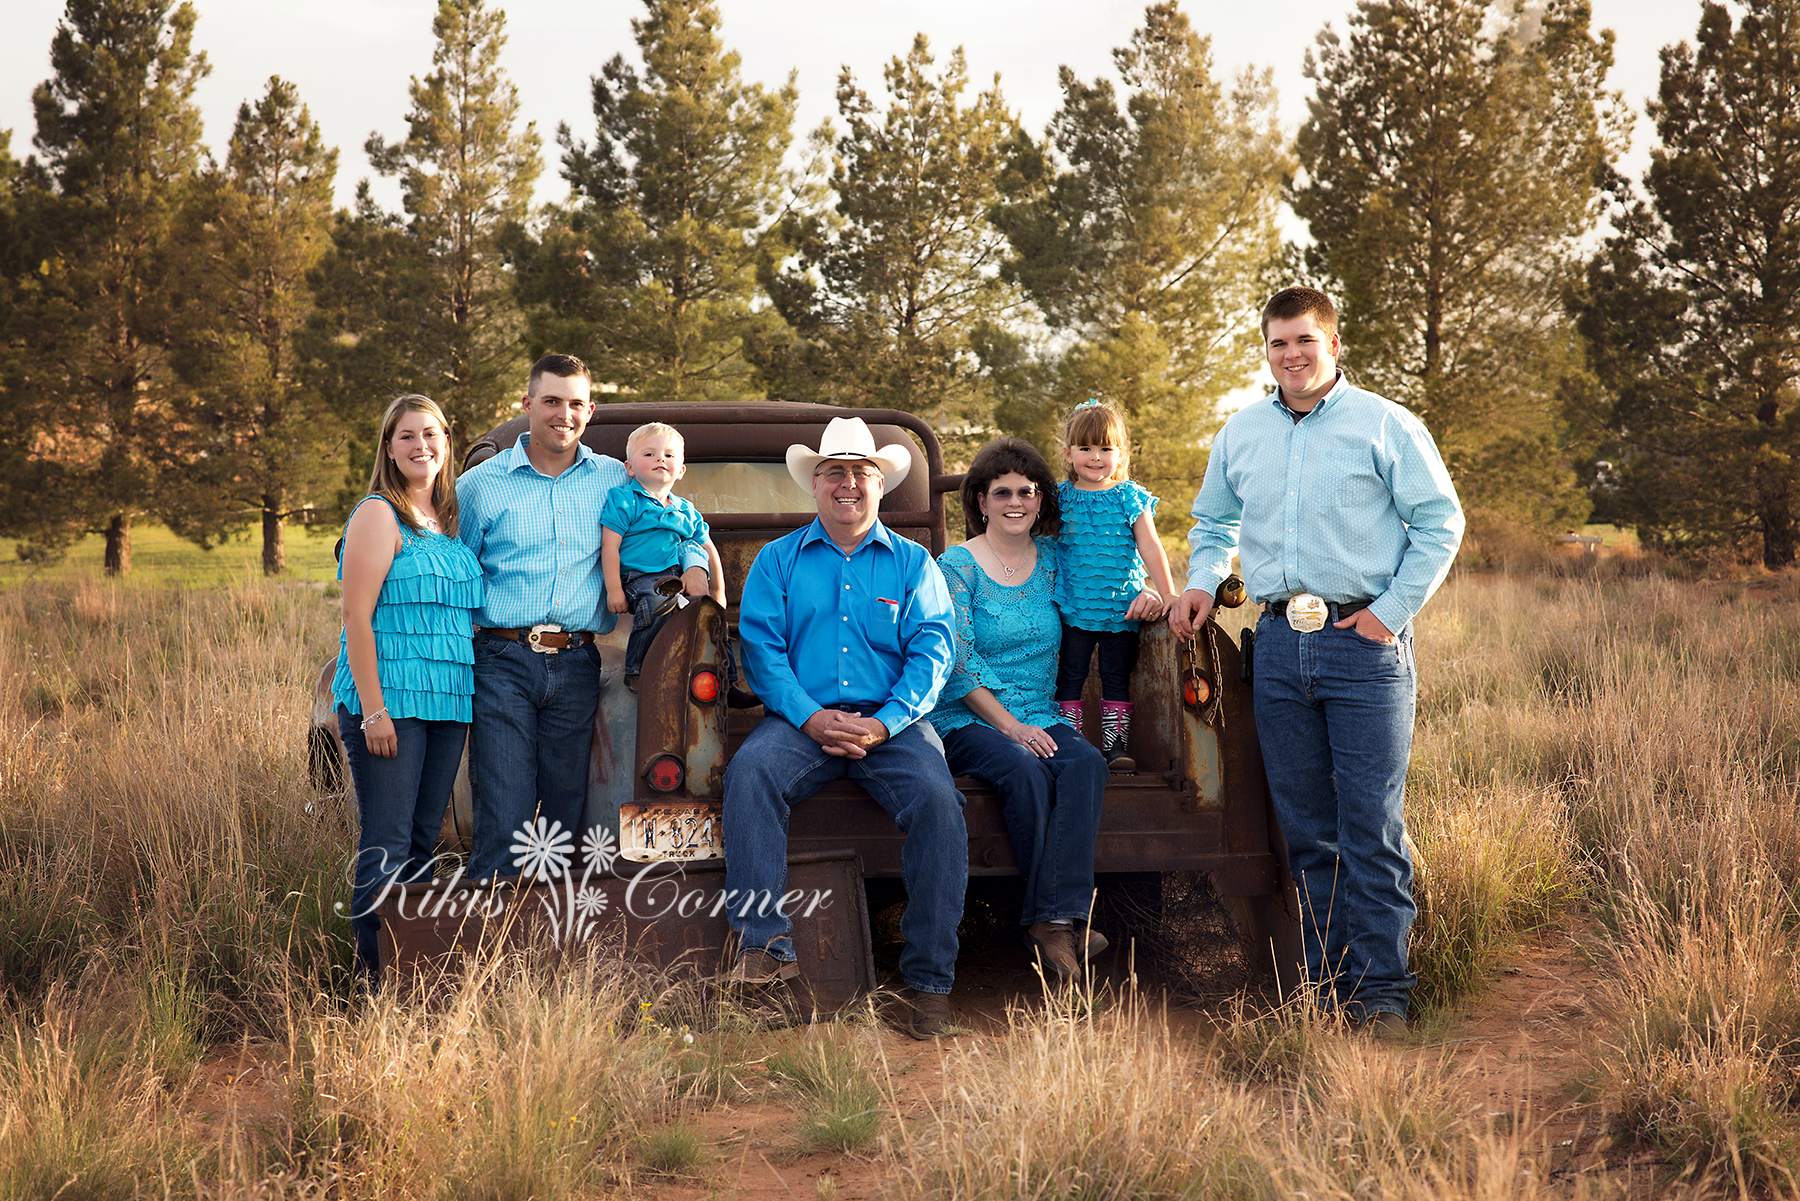 stanton tx family sessions, field image, old truck, three generations